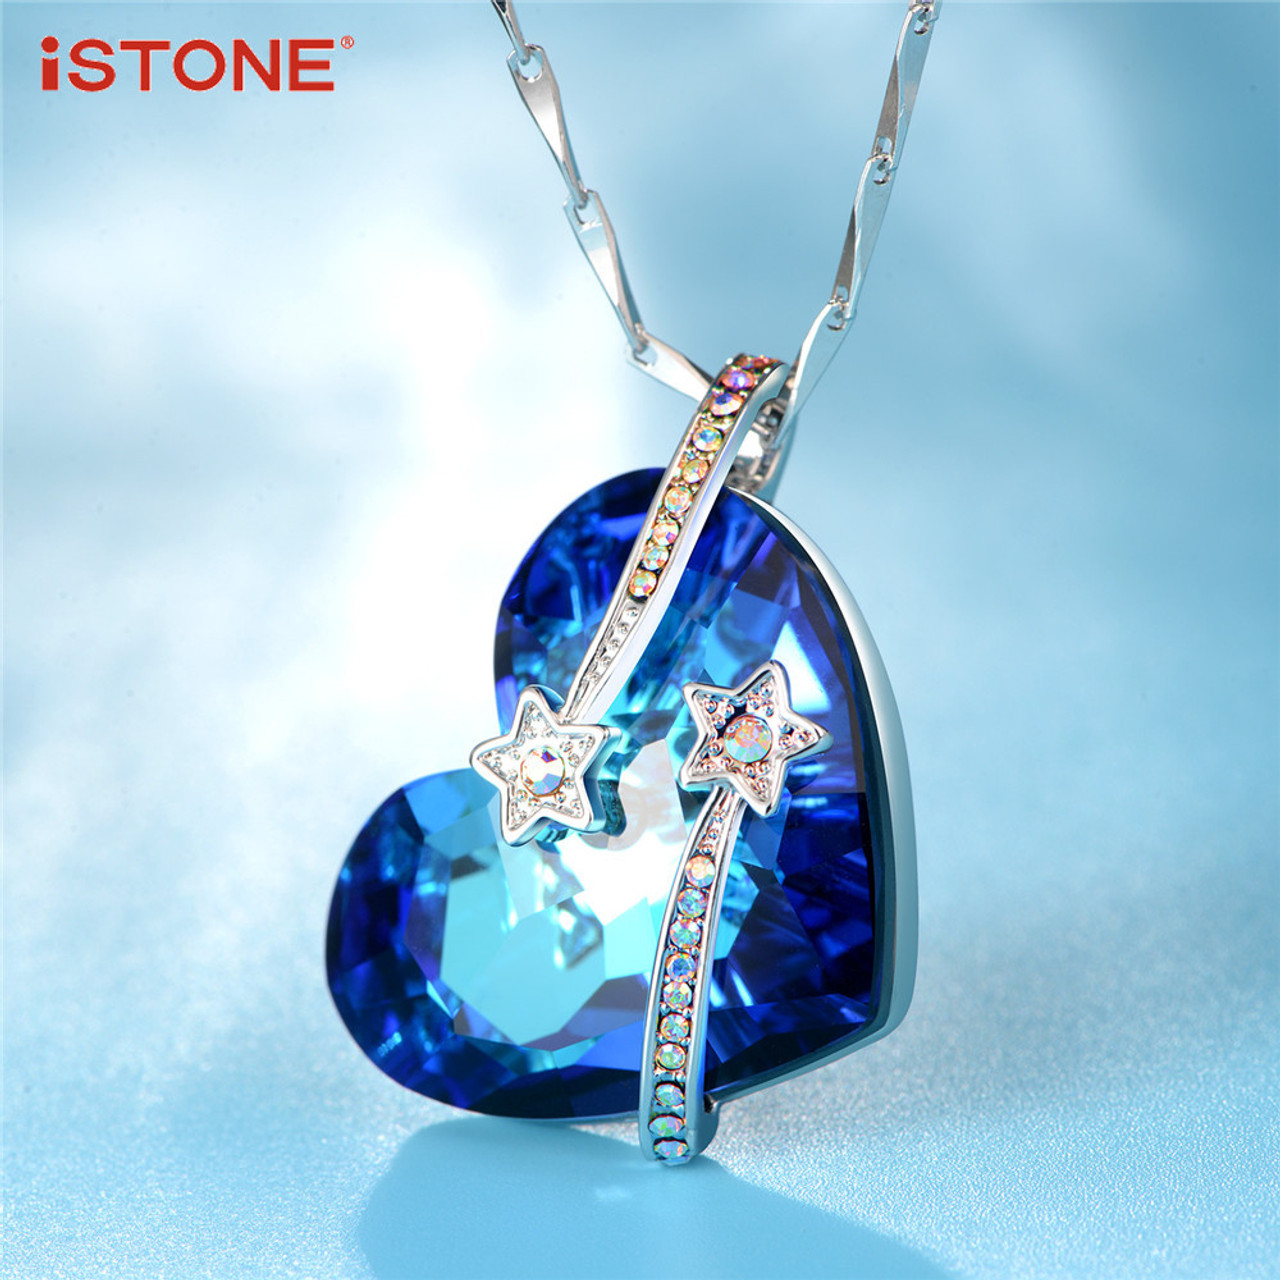 Istone blue crystal heart of sea pendant necklaces with 925 sterling istone blue crystal heart of sea pendant necklaces with 925 sterling silver necklace natural gemstone fine aloadofball Choice Image